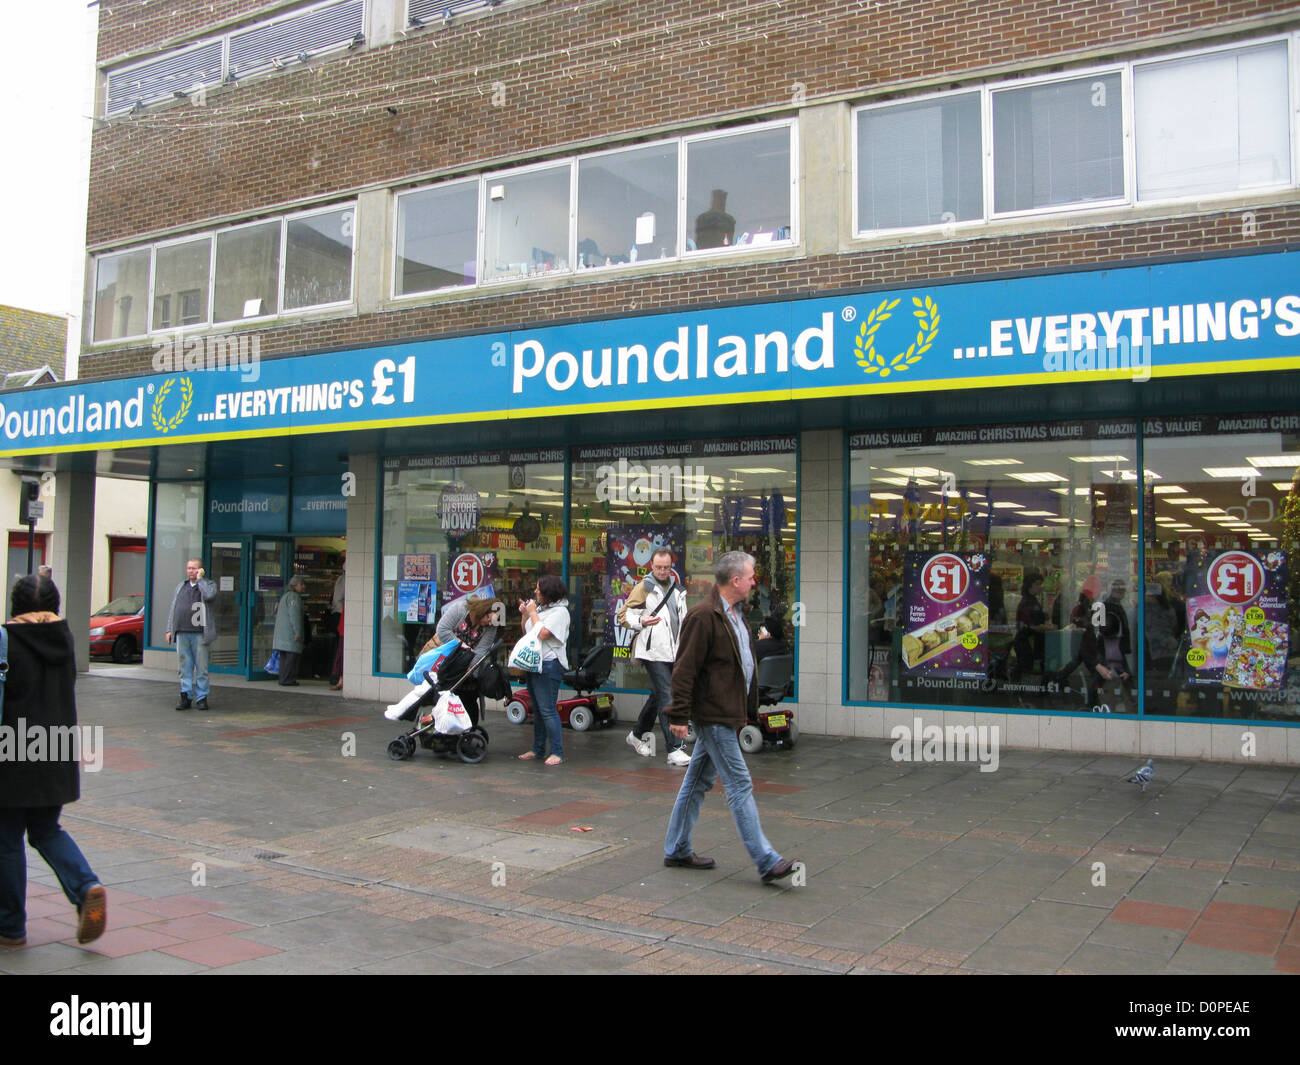 Poundland discount store shop Worthing West Sussex UK - Stock Image